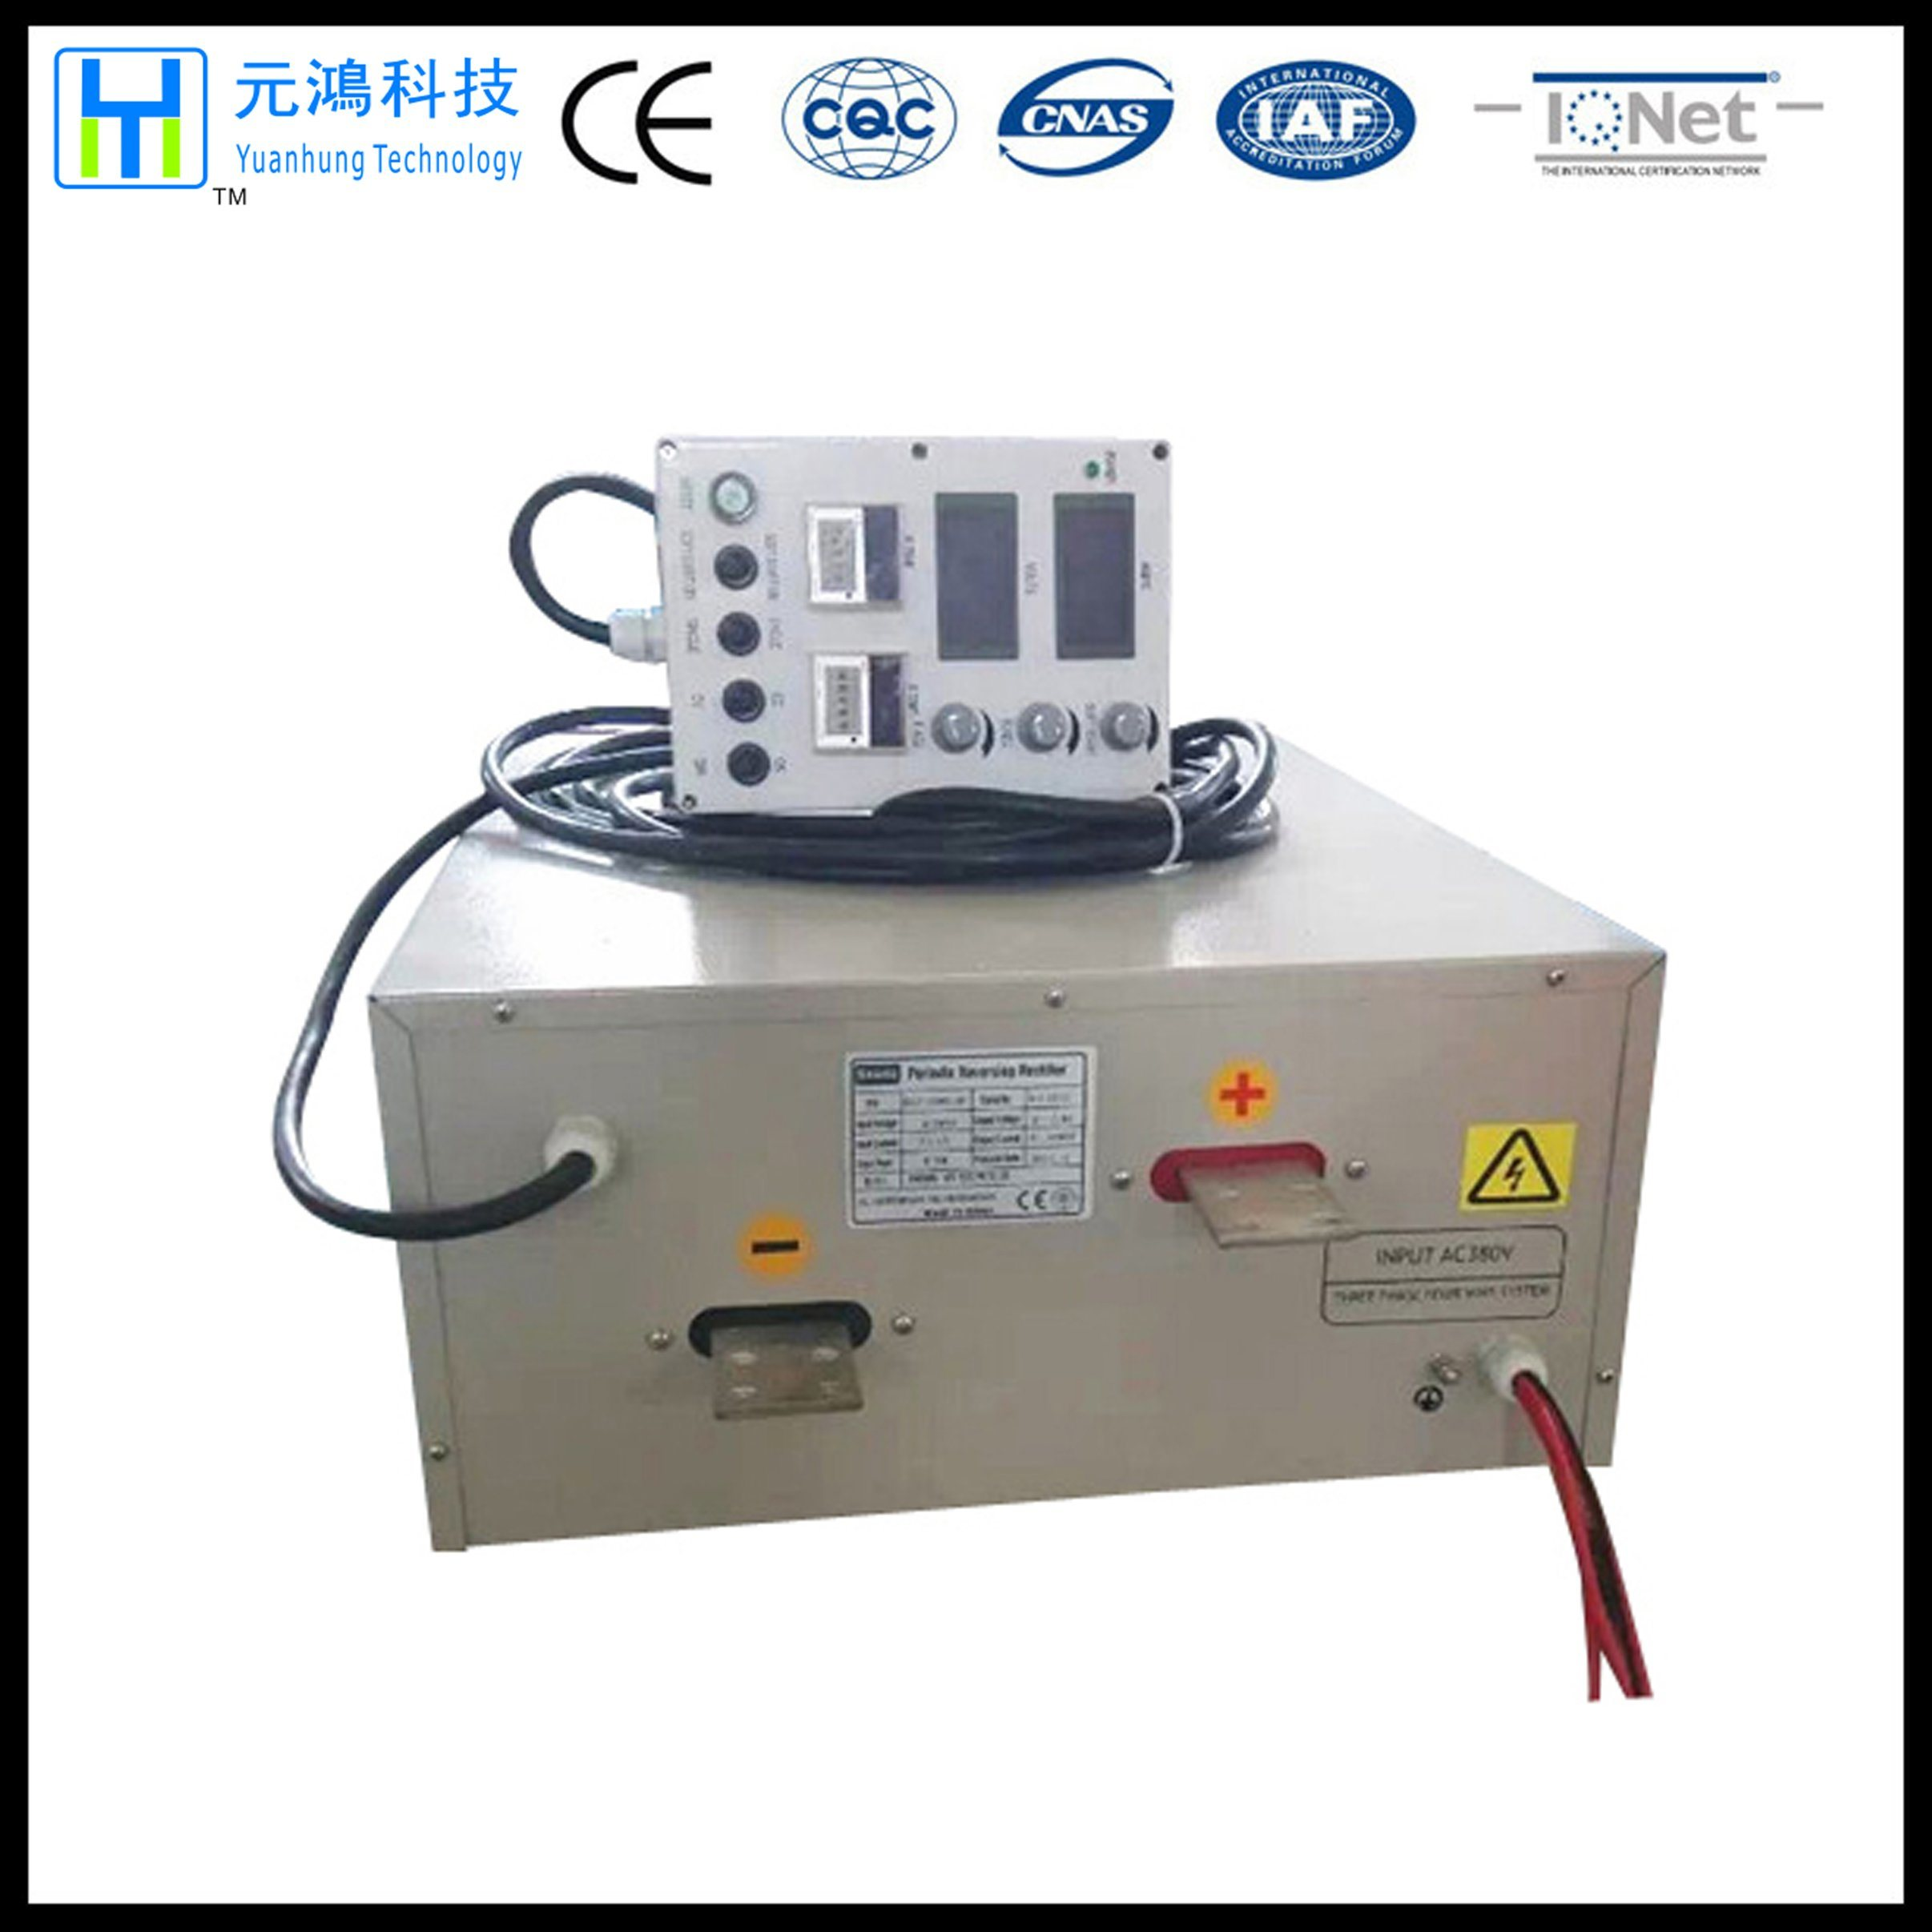 Forced Air Cooled 1000 AMP Rectifier with Reversing Function